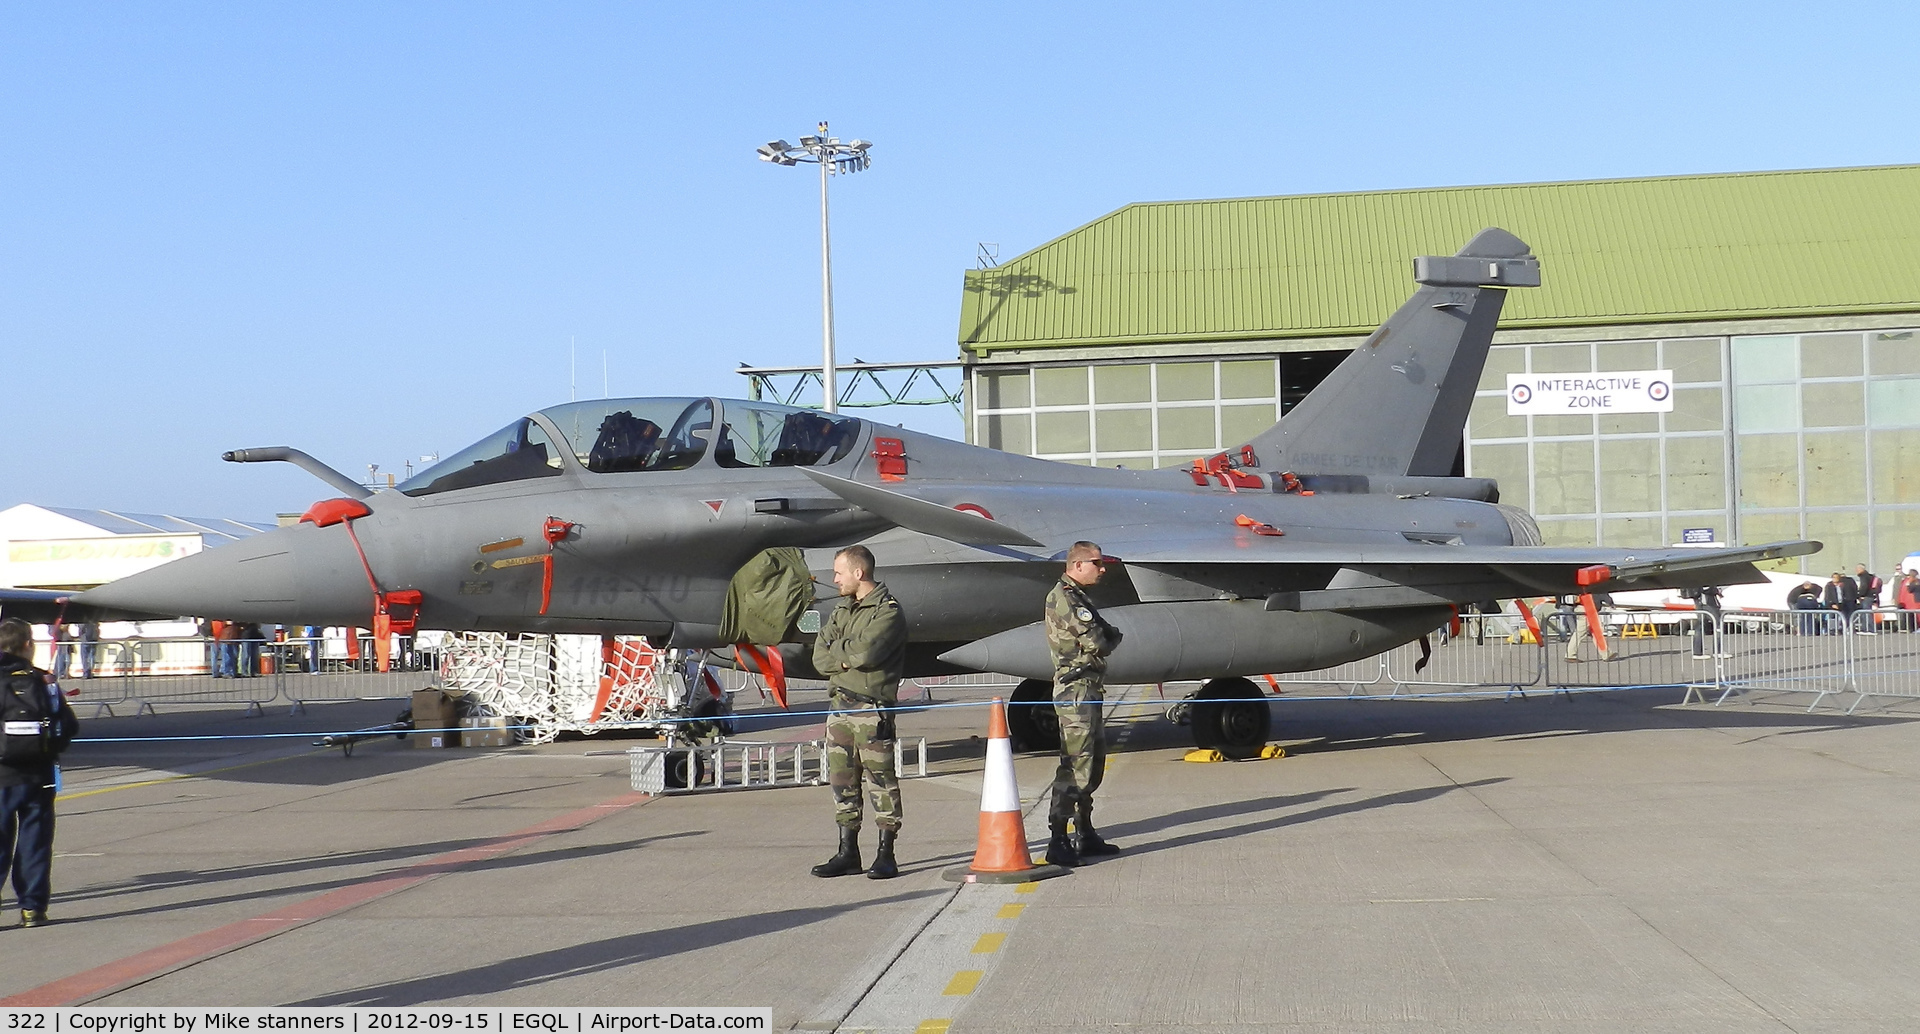 322, Dassault Rafale B C/N 322, EC1/7 Rafale B in the static display at Leuchars airshow 2012,first pic in the database